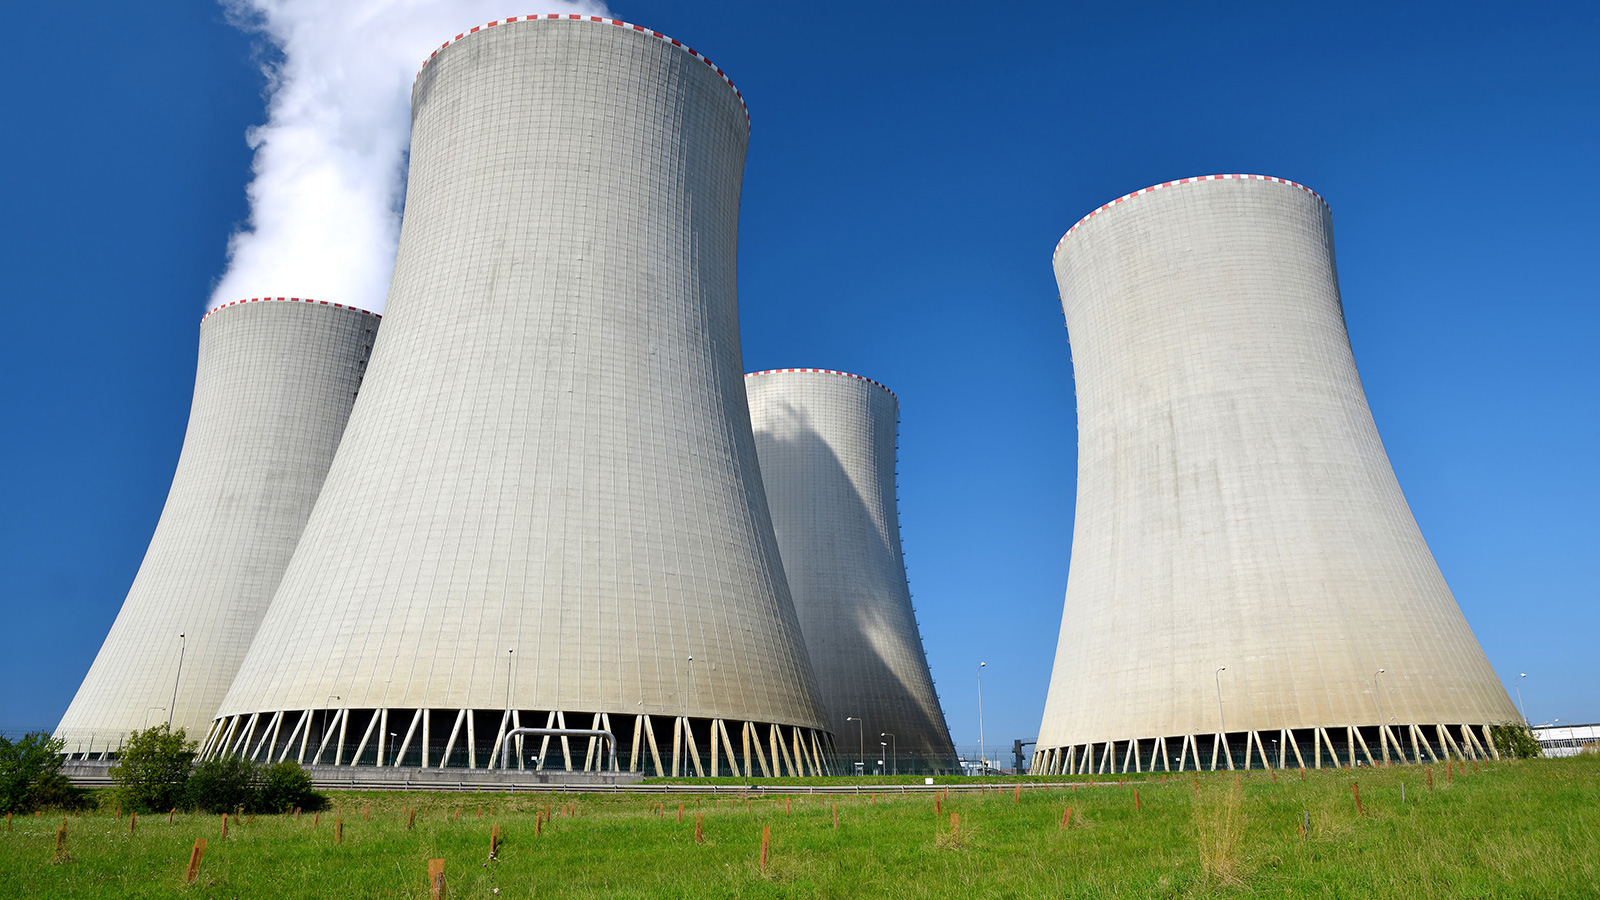 Four cooling towers